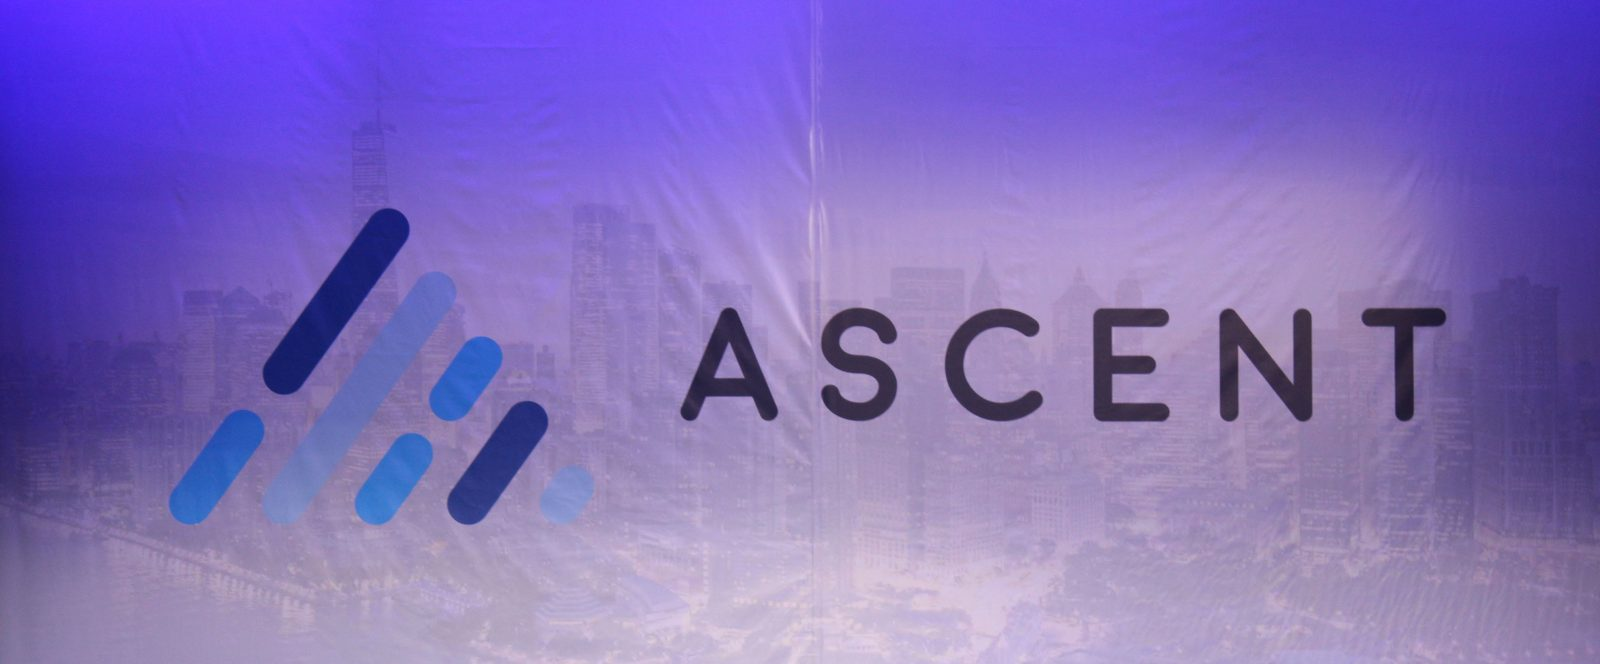 NYC Ascent Tech Conference Banner